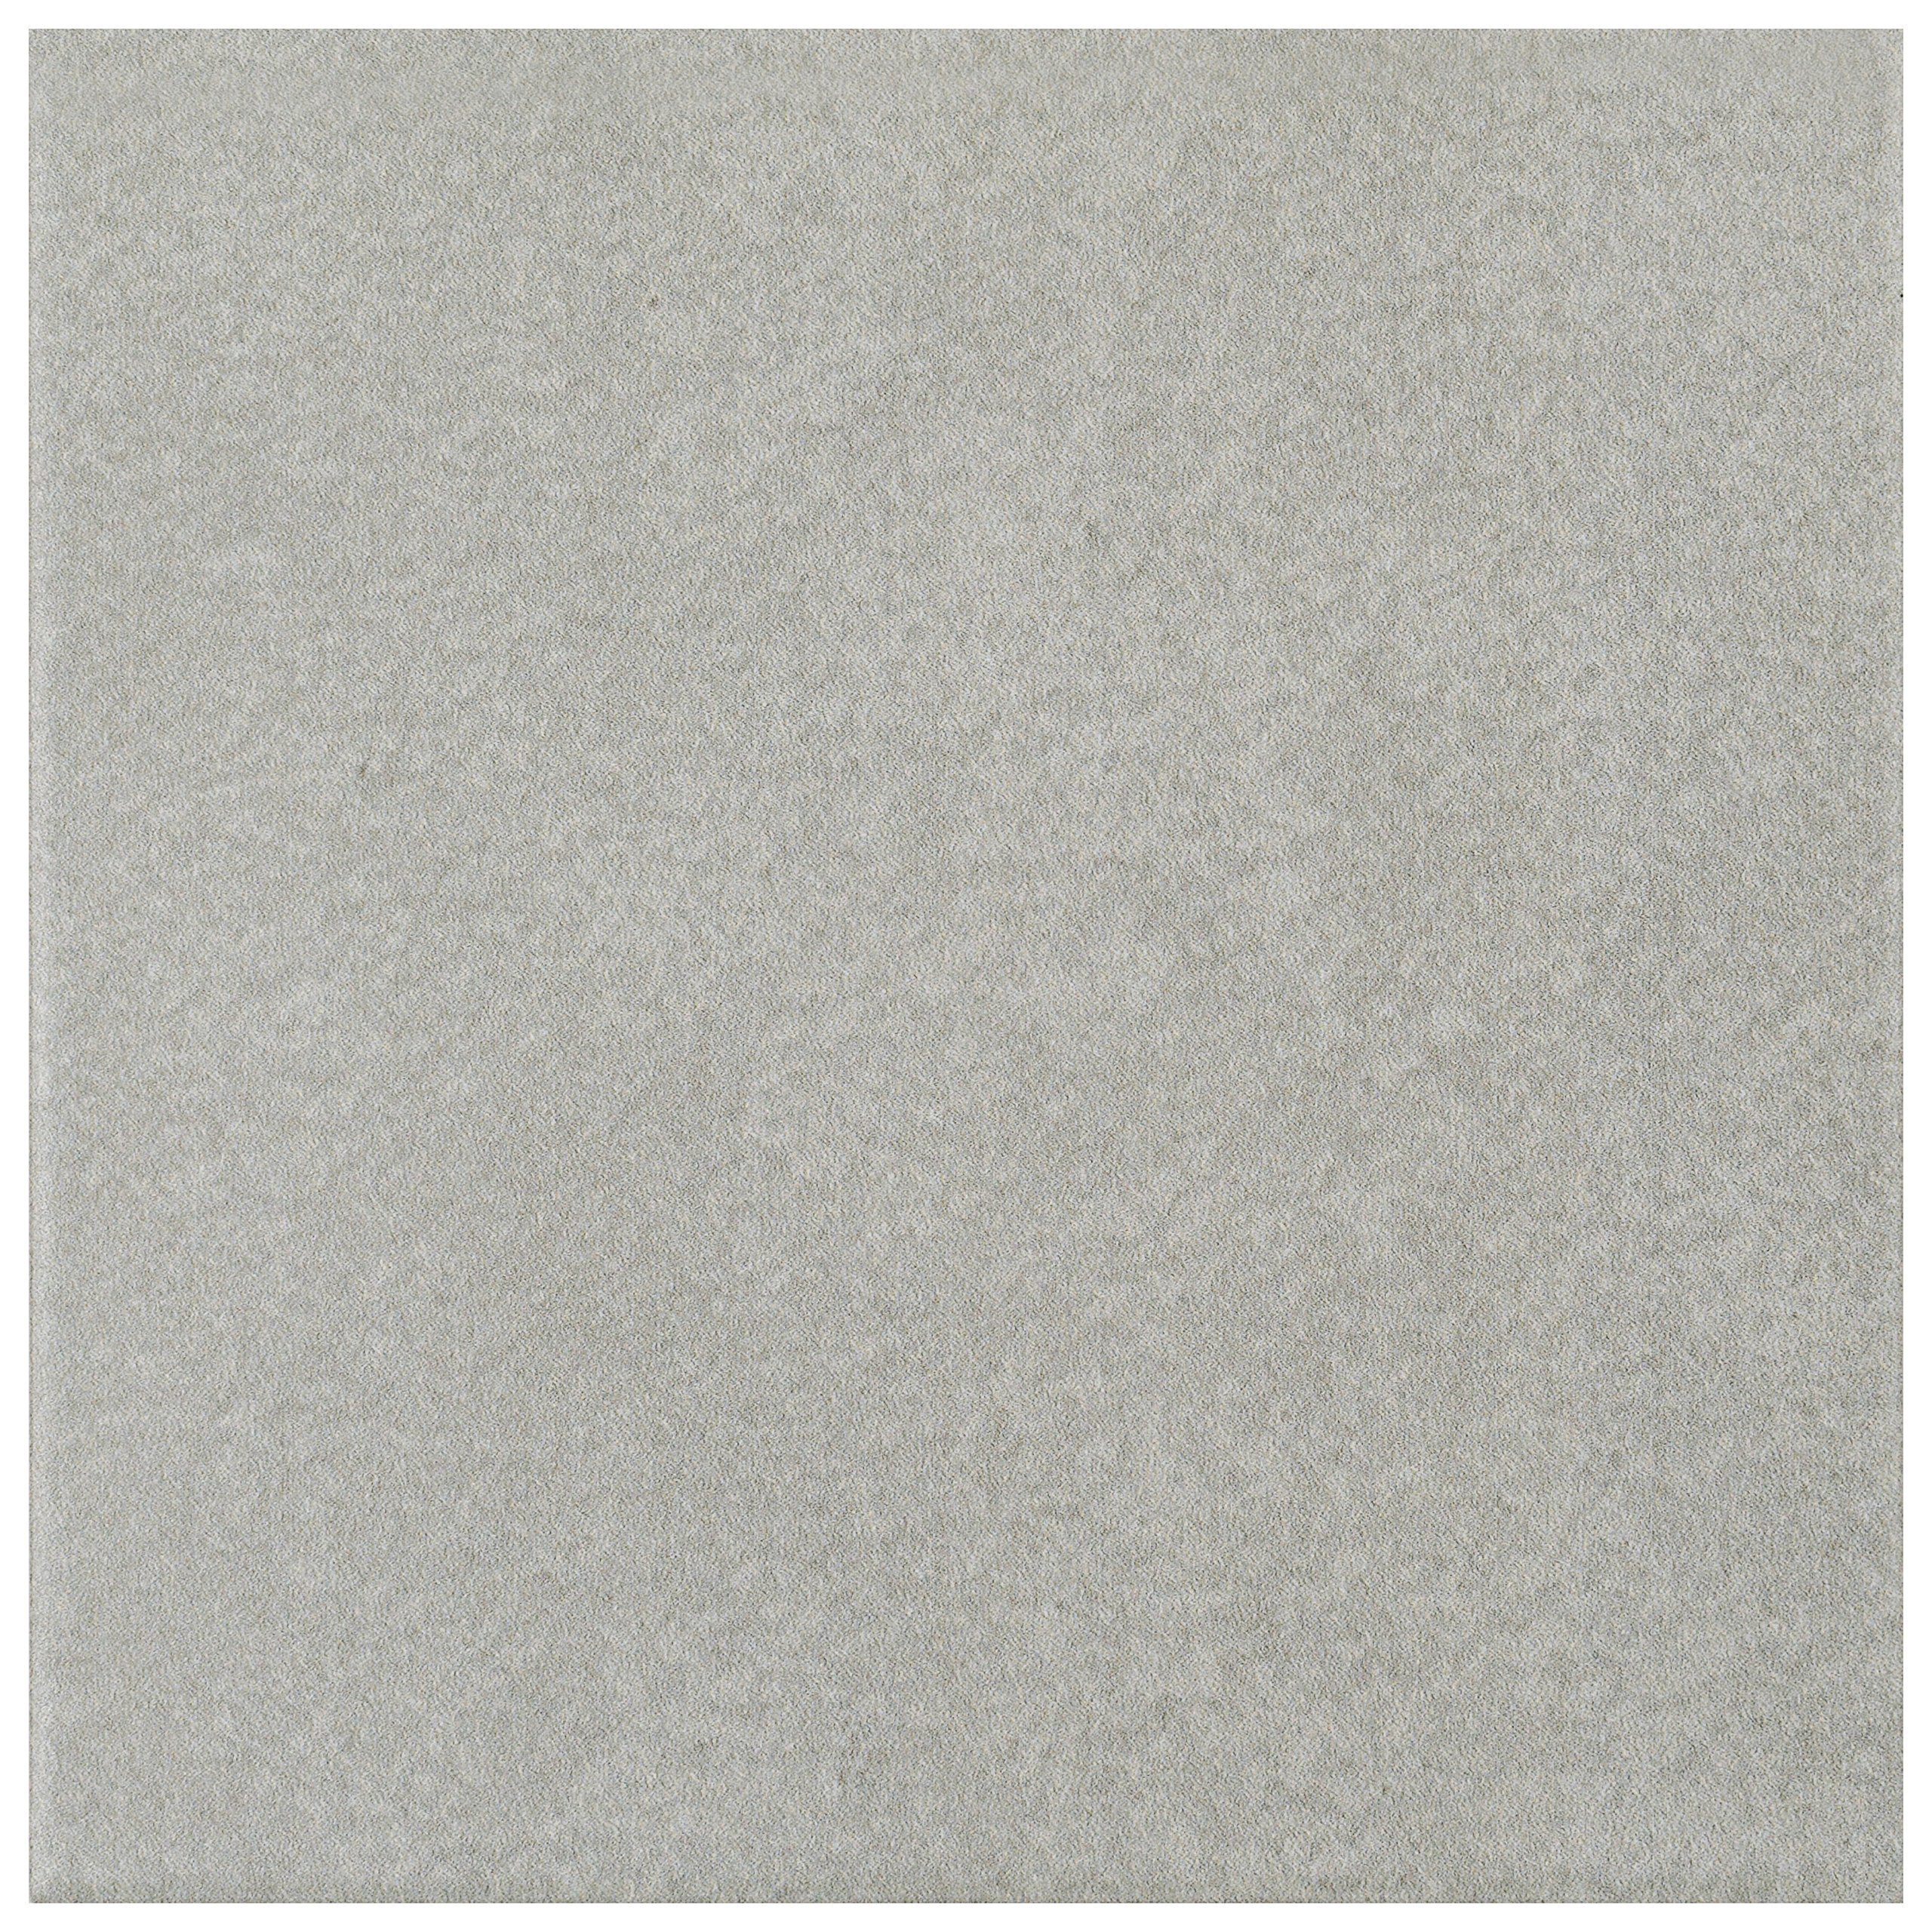 SomerTile FRC8TWEG Fifties Ceramic Floor and Wall Tile, 7.75'' x 7.75'', Grey by SOMERTILE